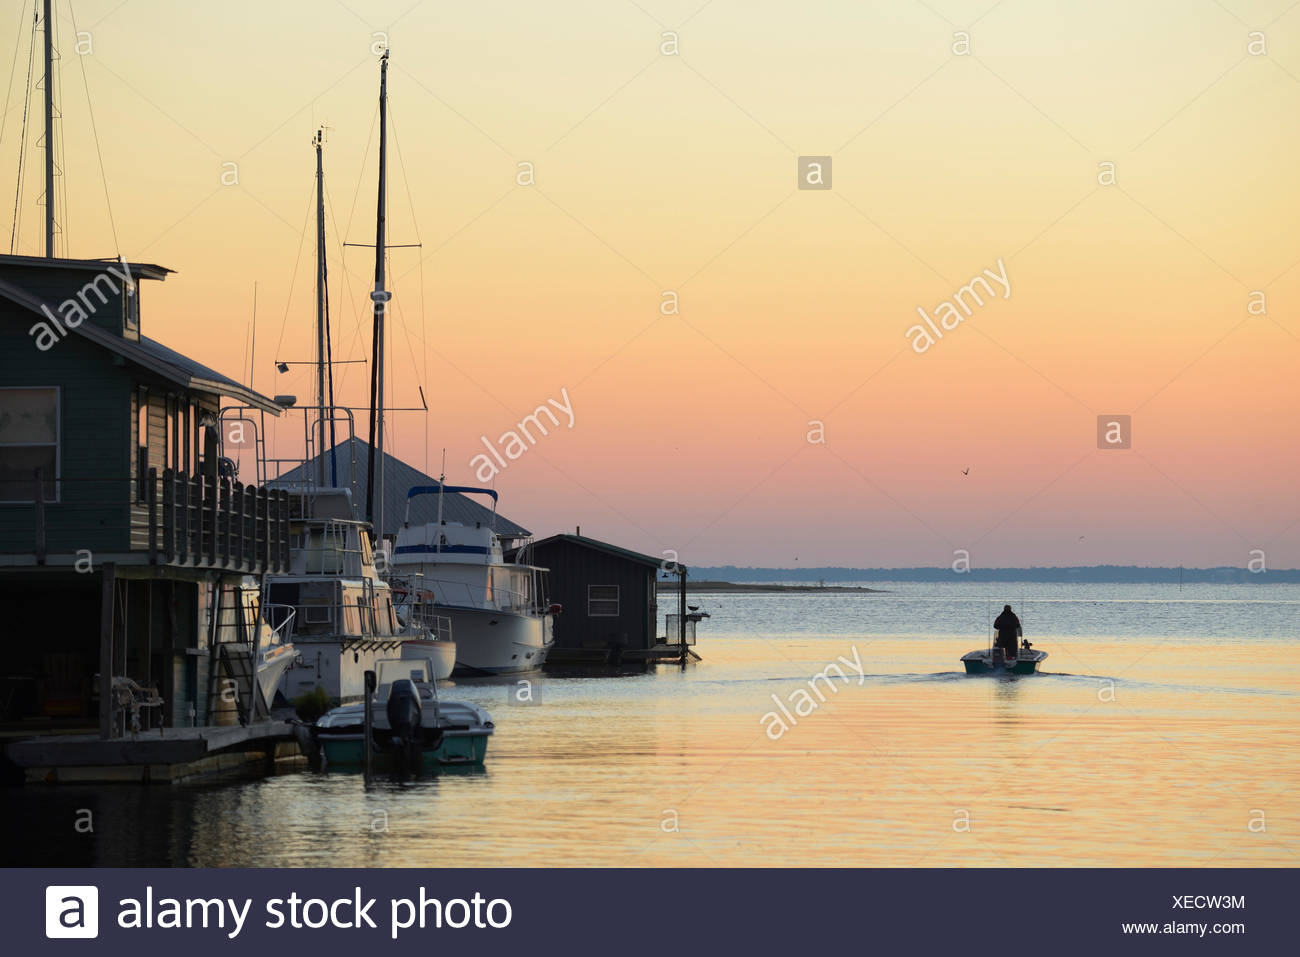 USA, Florida, Franklin County, Apalachicola, dock and boats along the river, - Stock Image